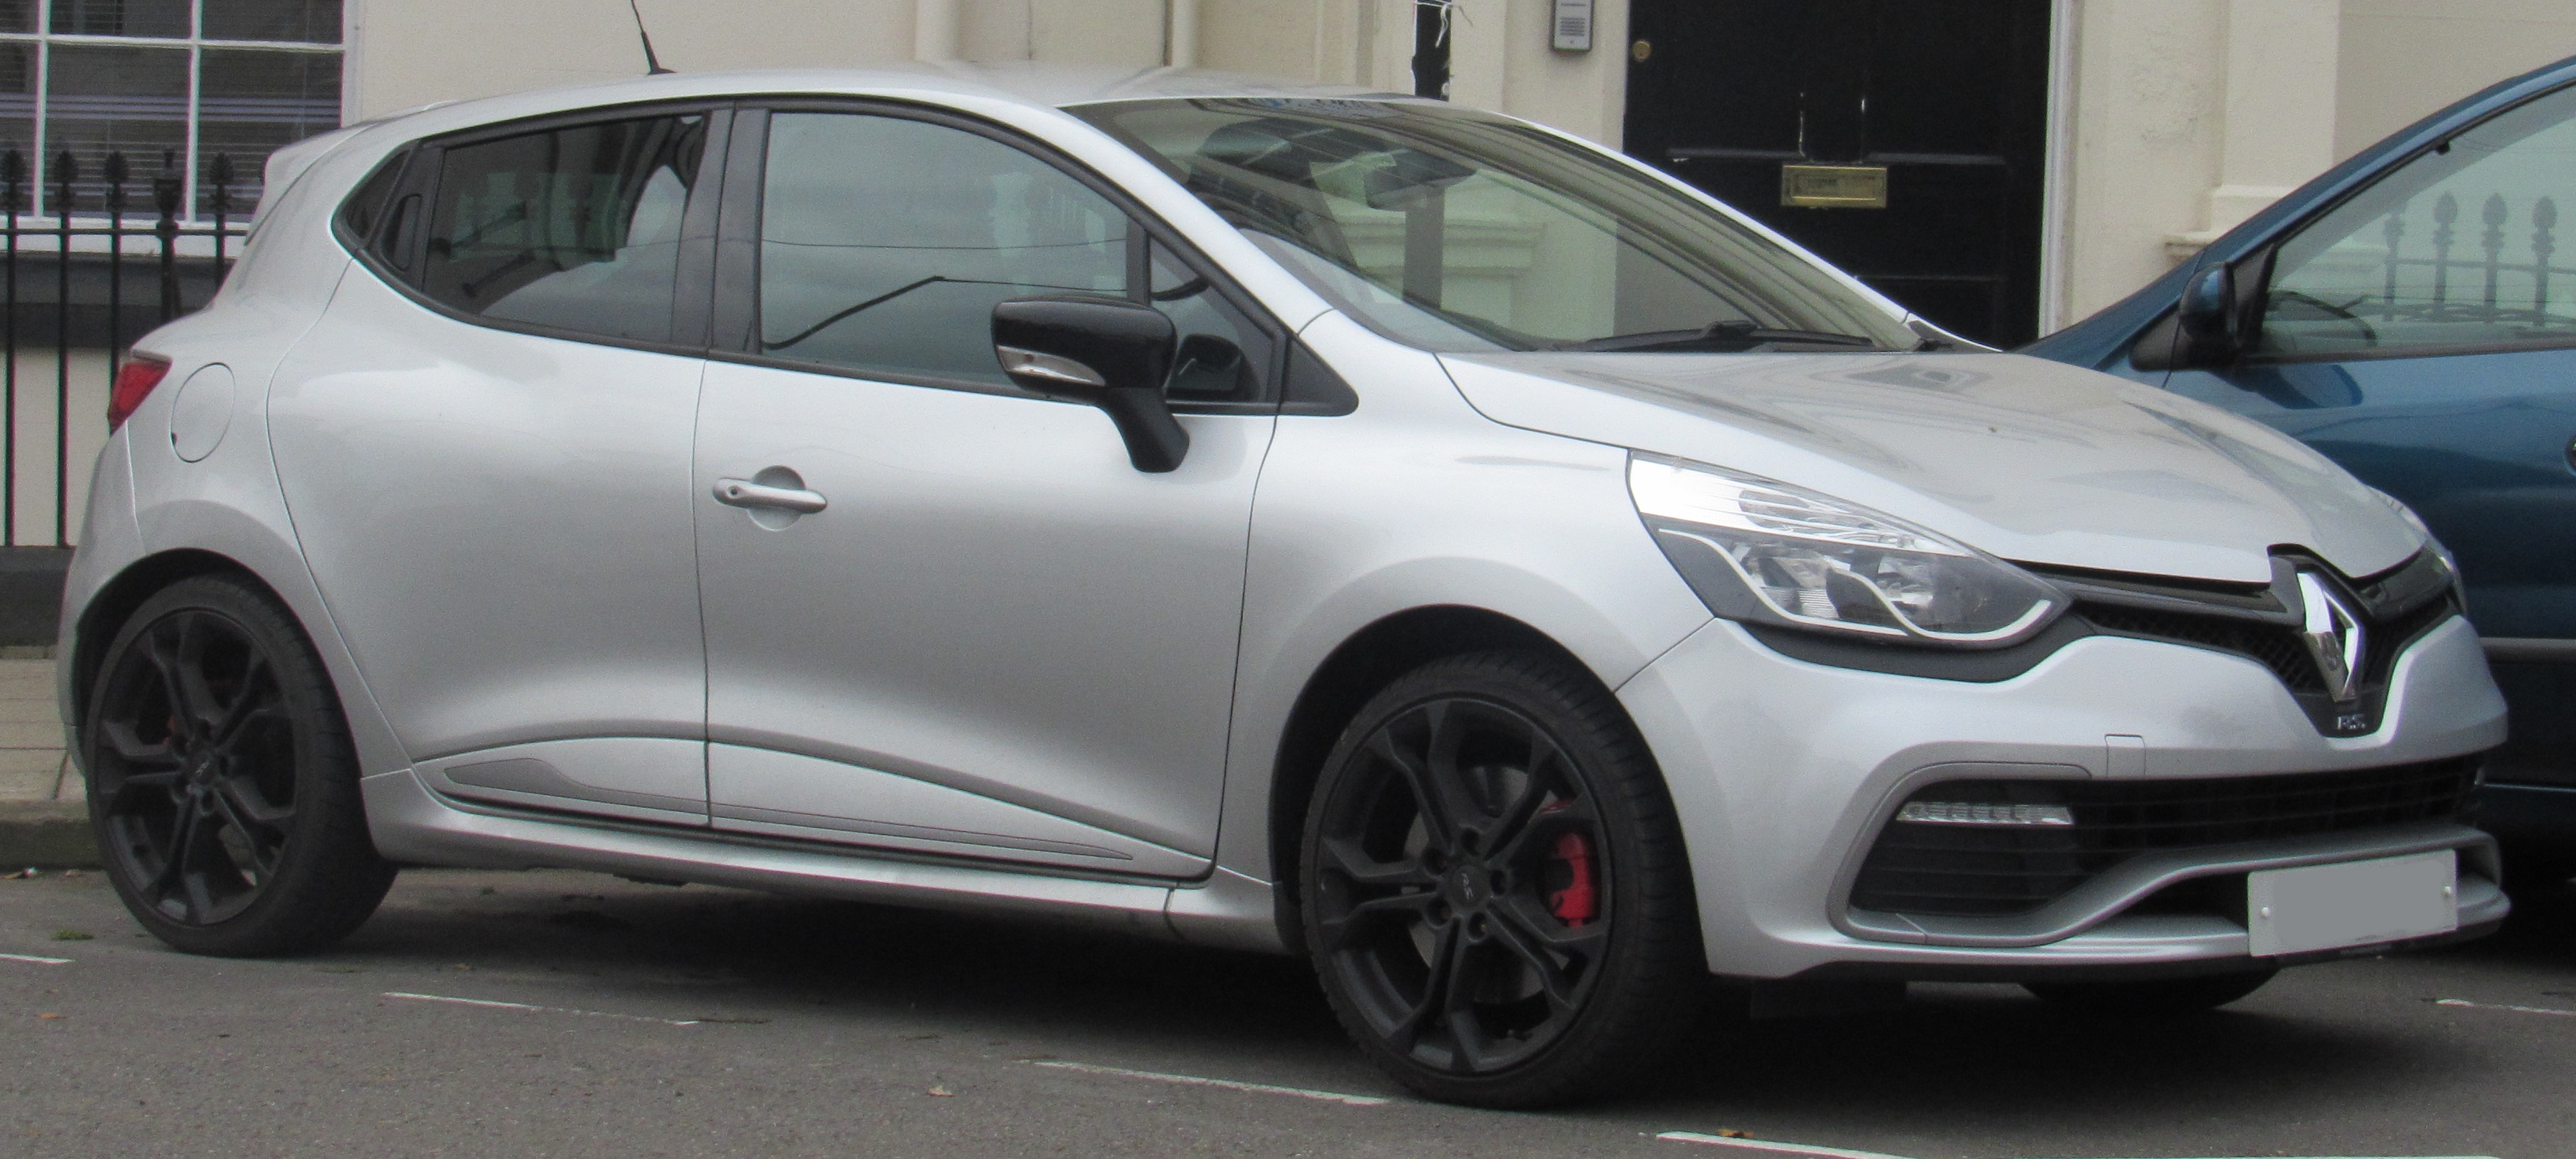 file 2014 renault clio rs iv automatic 1 wikimedia commons. Black Bedroom Furniture Sets. Home Design Ideas